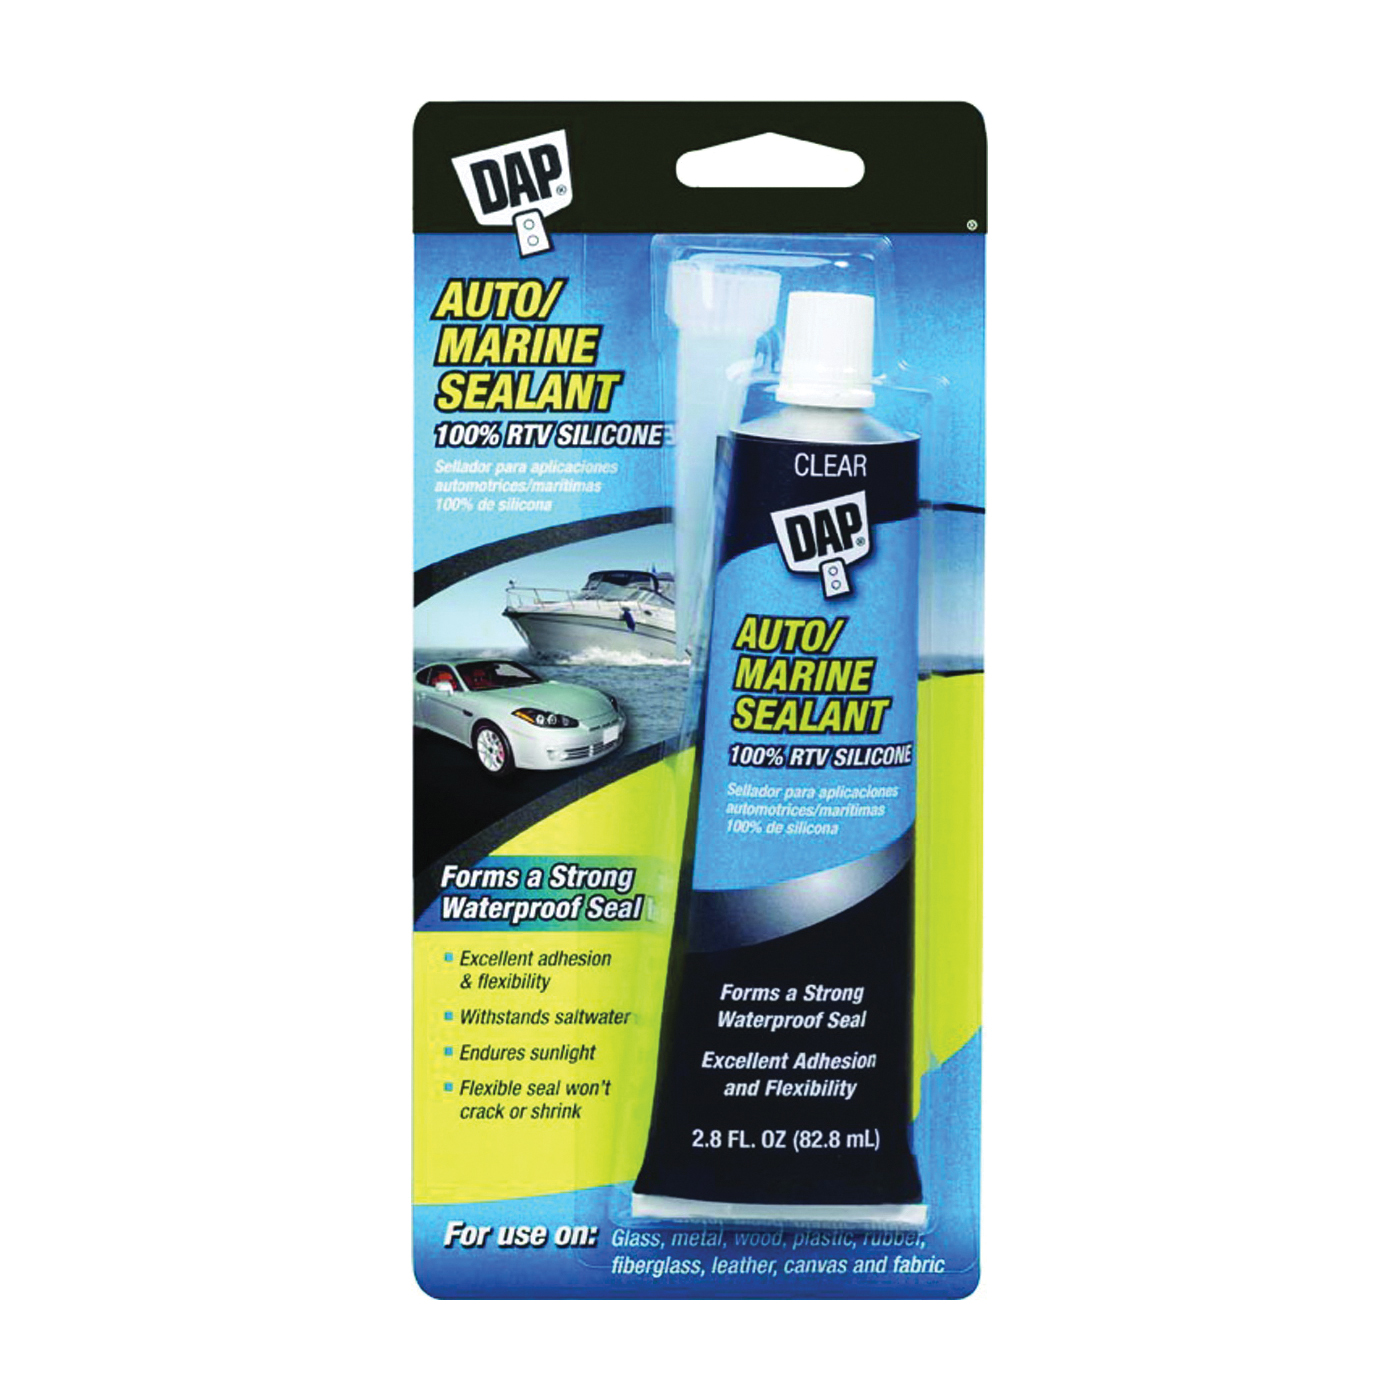 Picture of DAP 7079800756 Auto/Marine Sealant, Clear, 2.8 oz Package, Tube